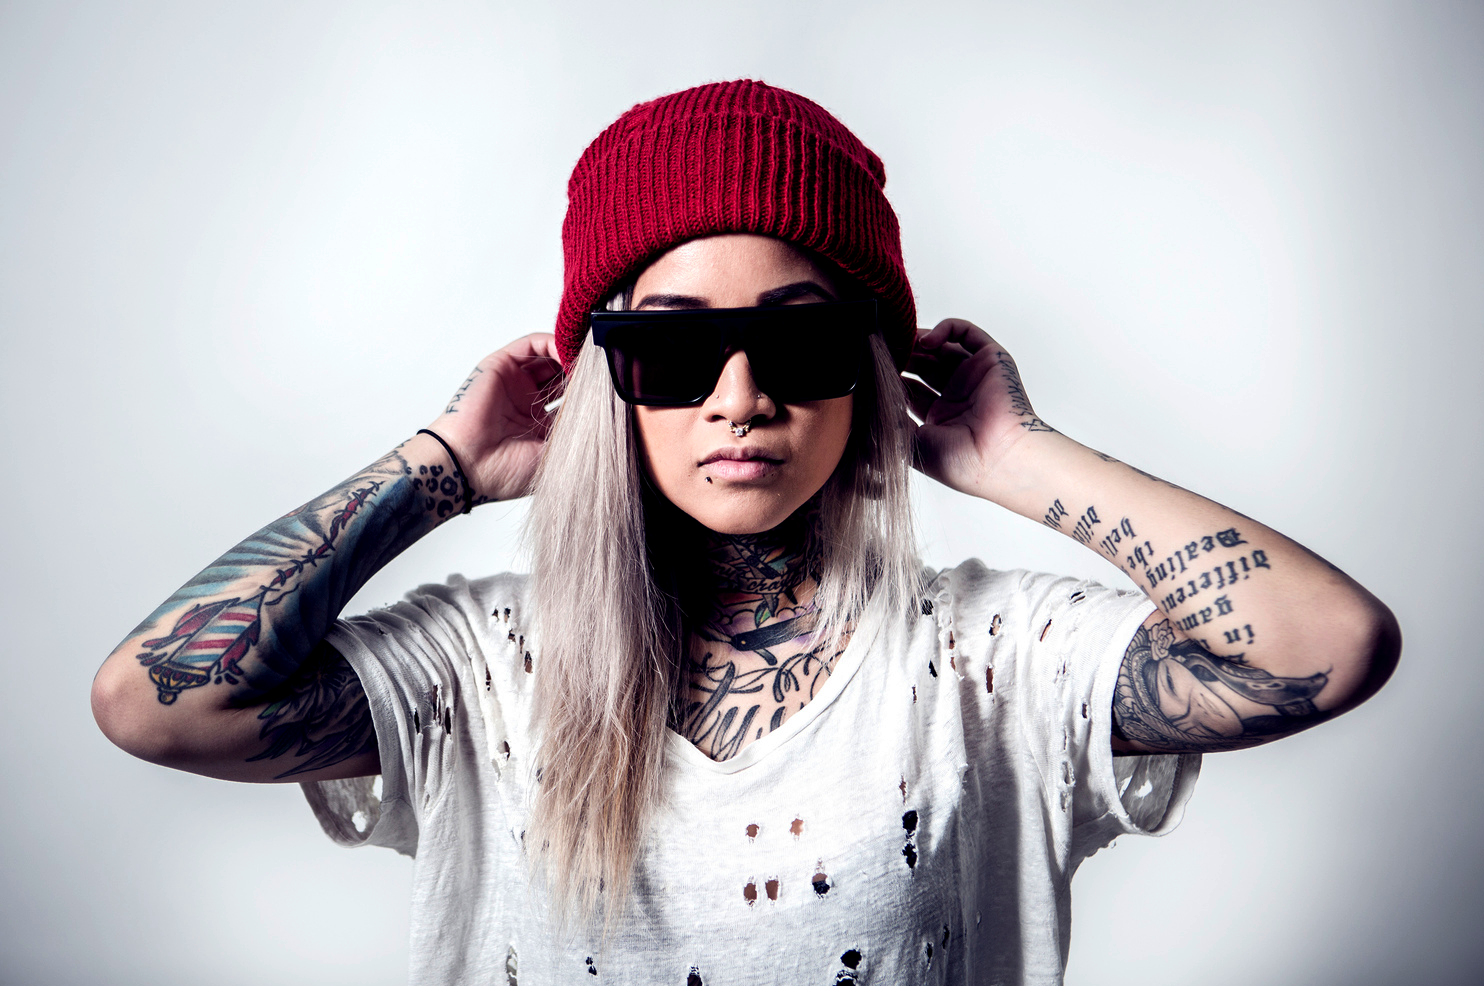 ryan feng photography staygold31 sofie the barber